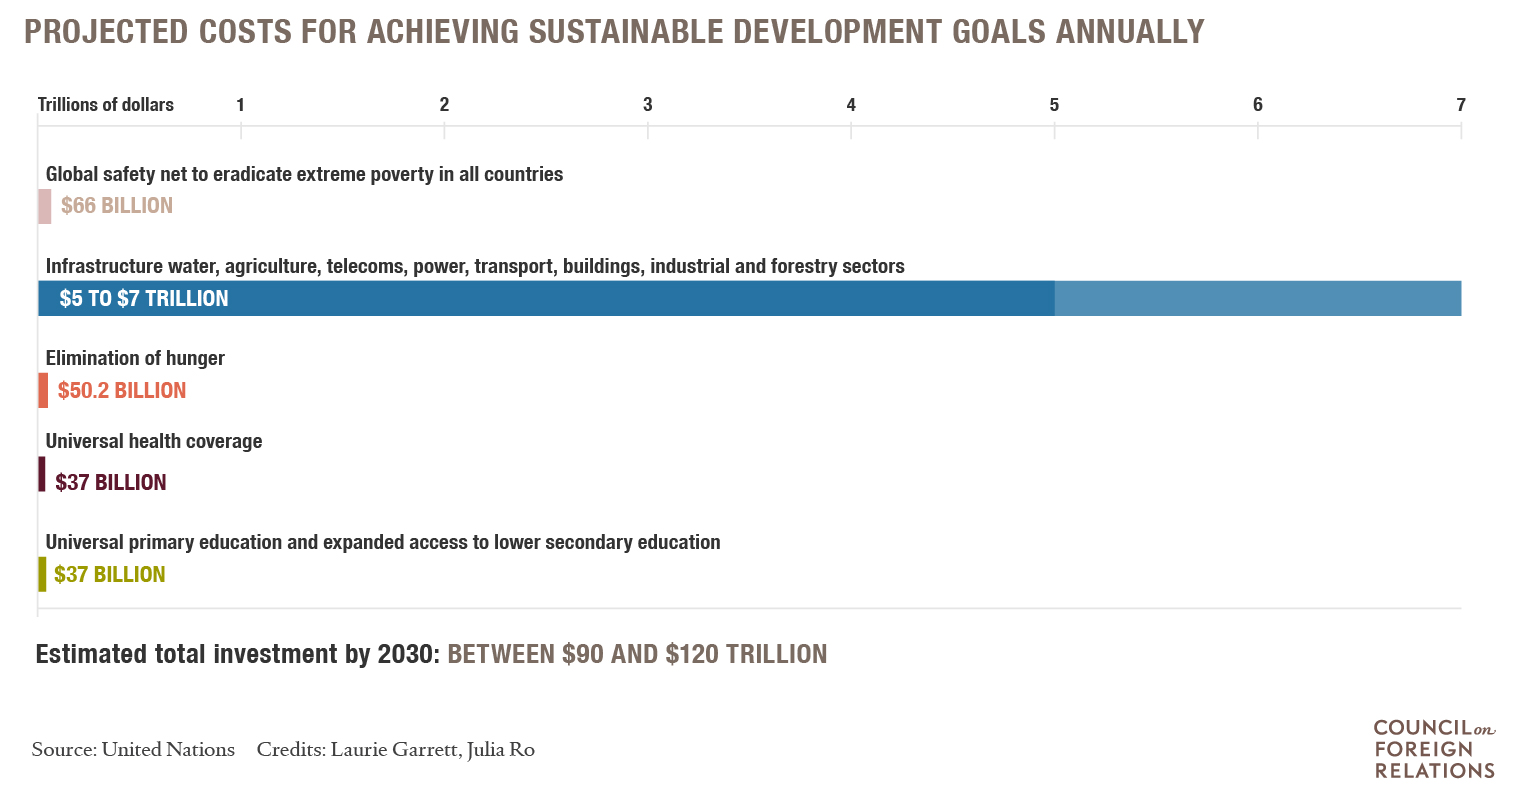 SustainableDevelopmentGoals_FINAL.jpg